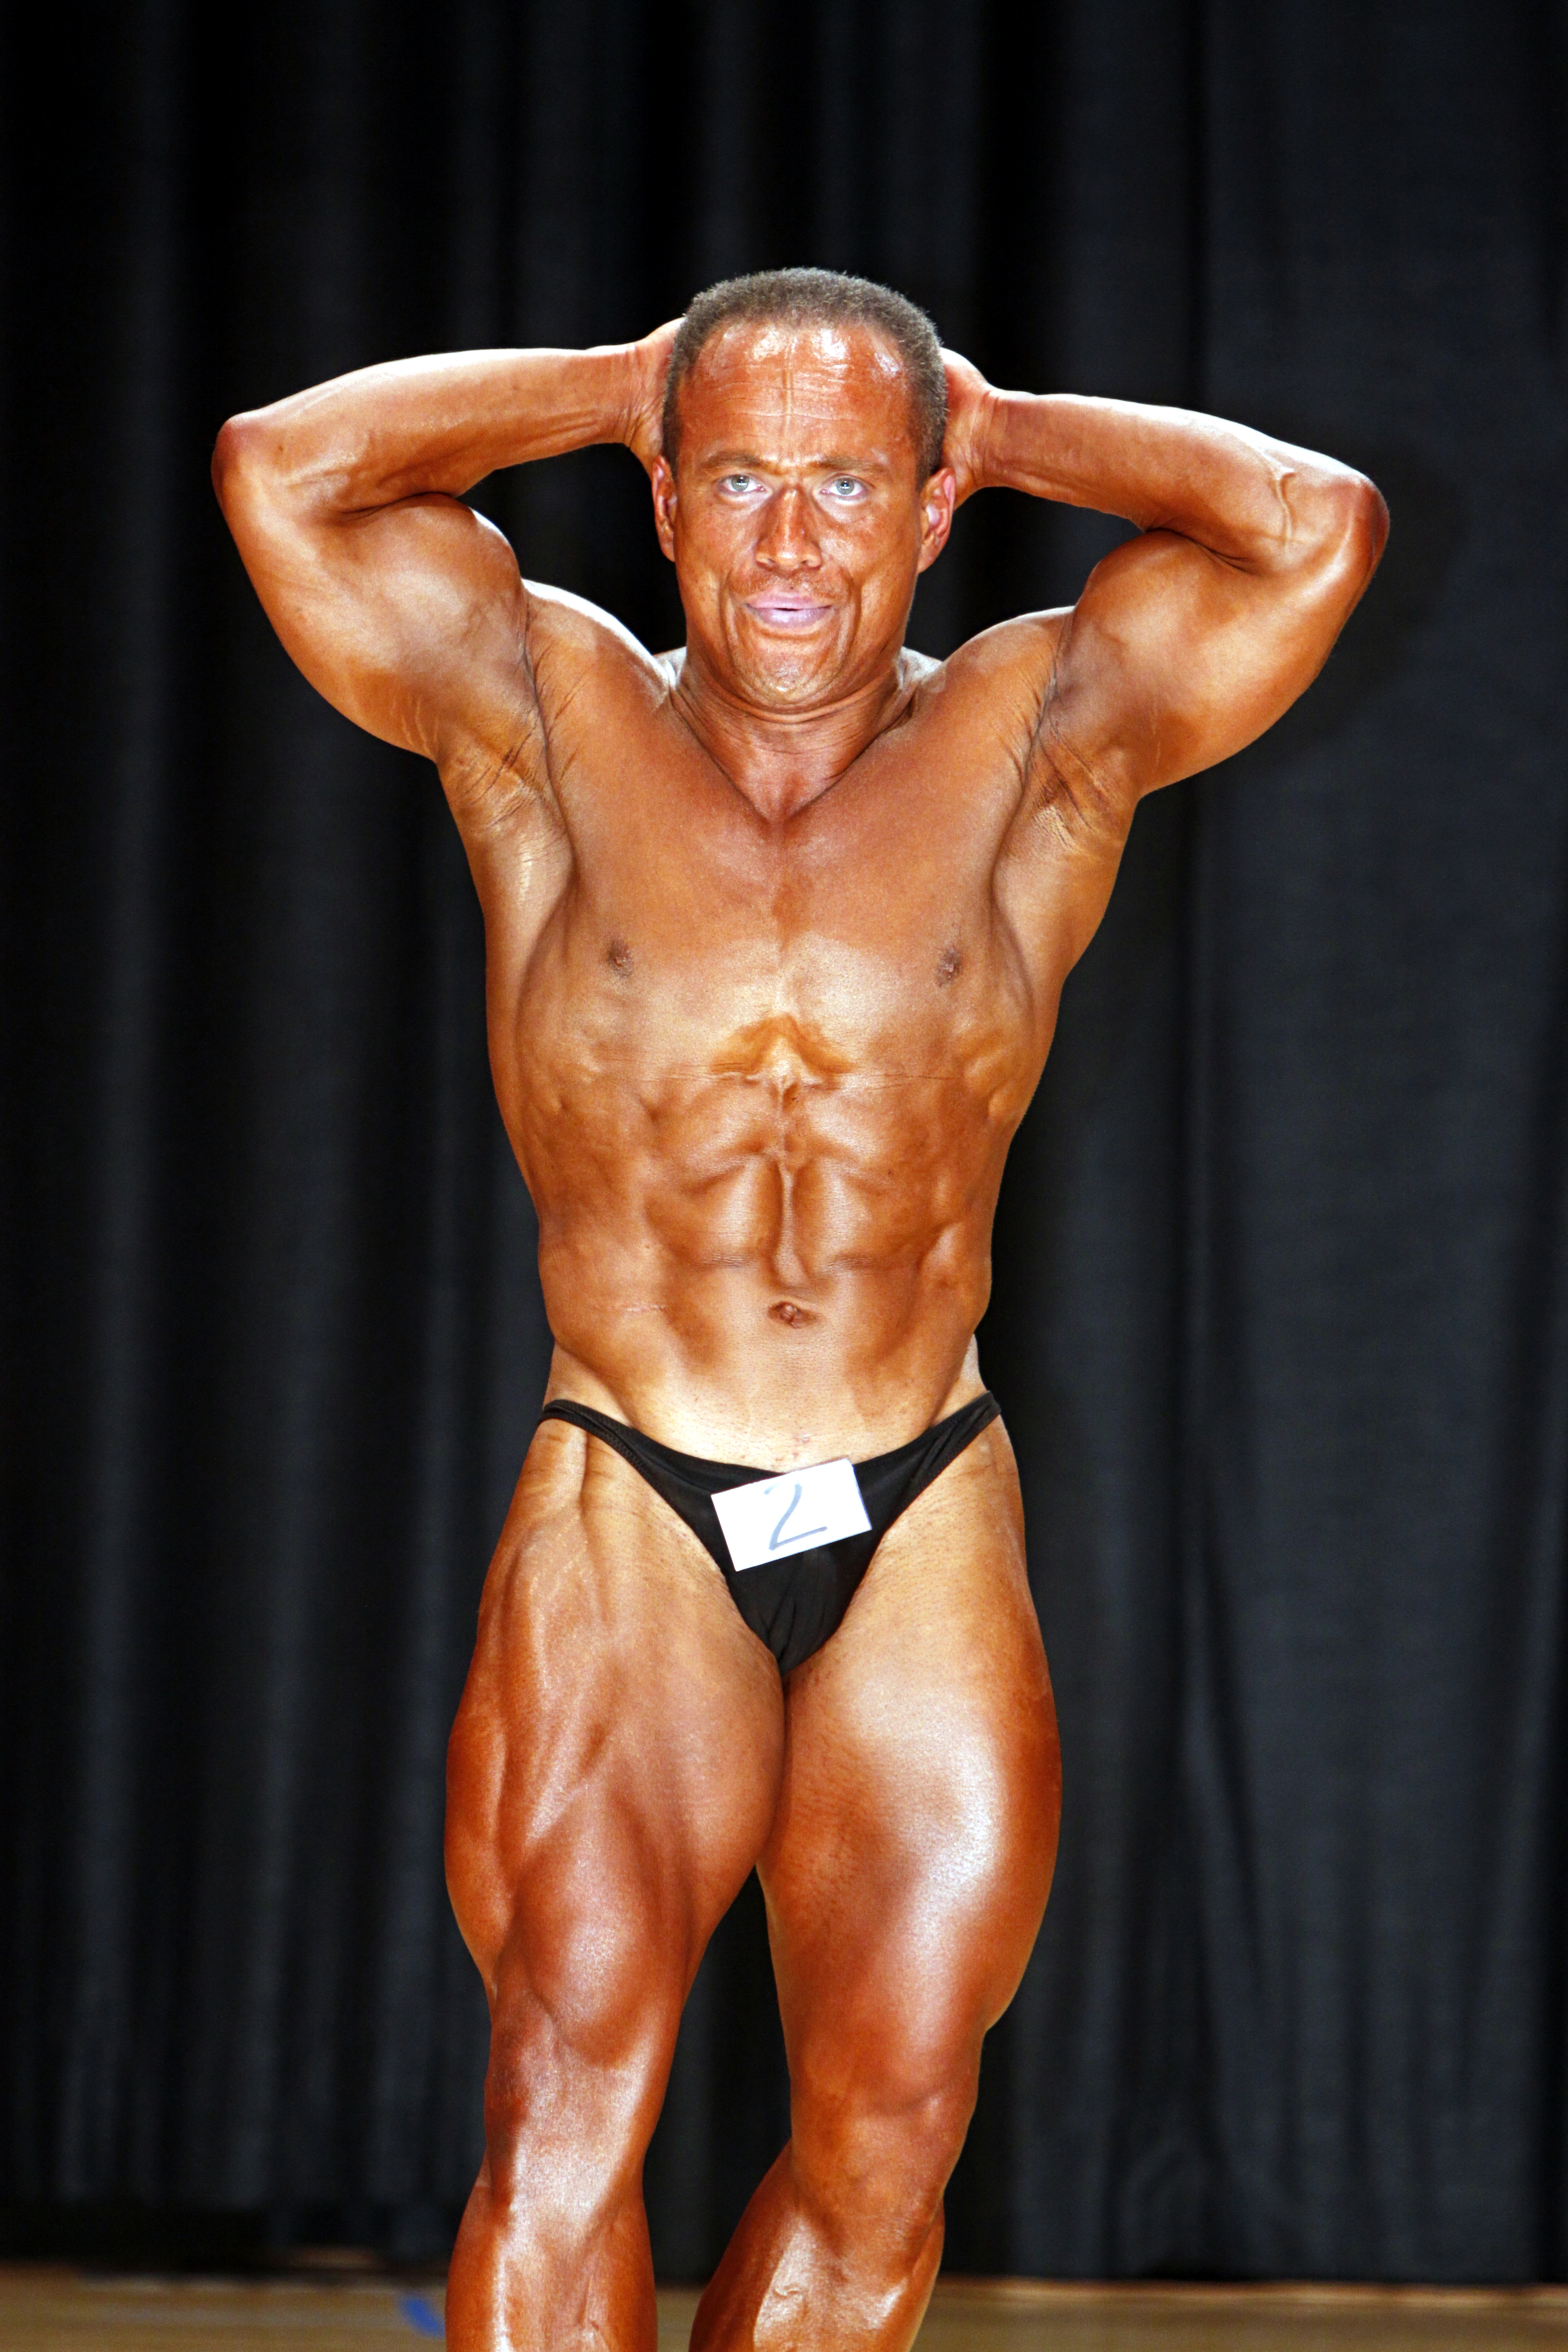 Youngest Bodybuilder In The World | Top Images Archive